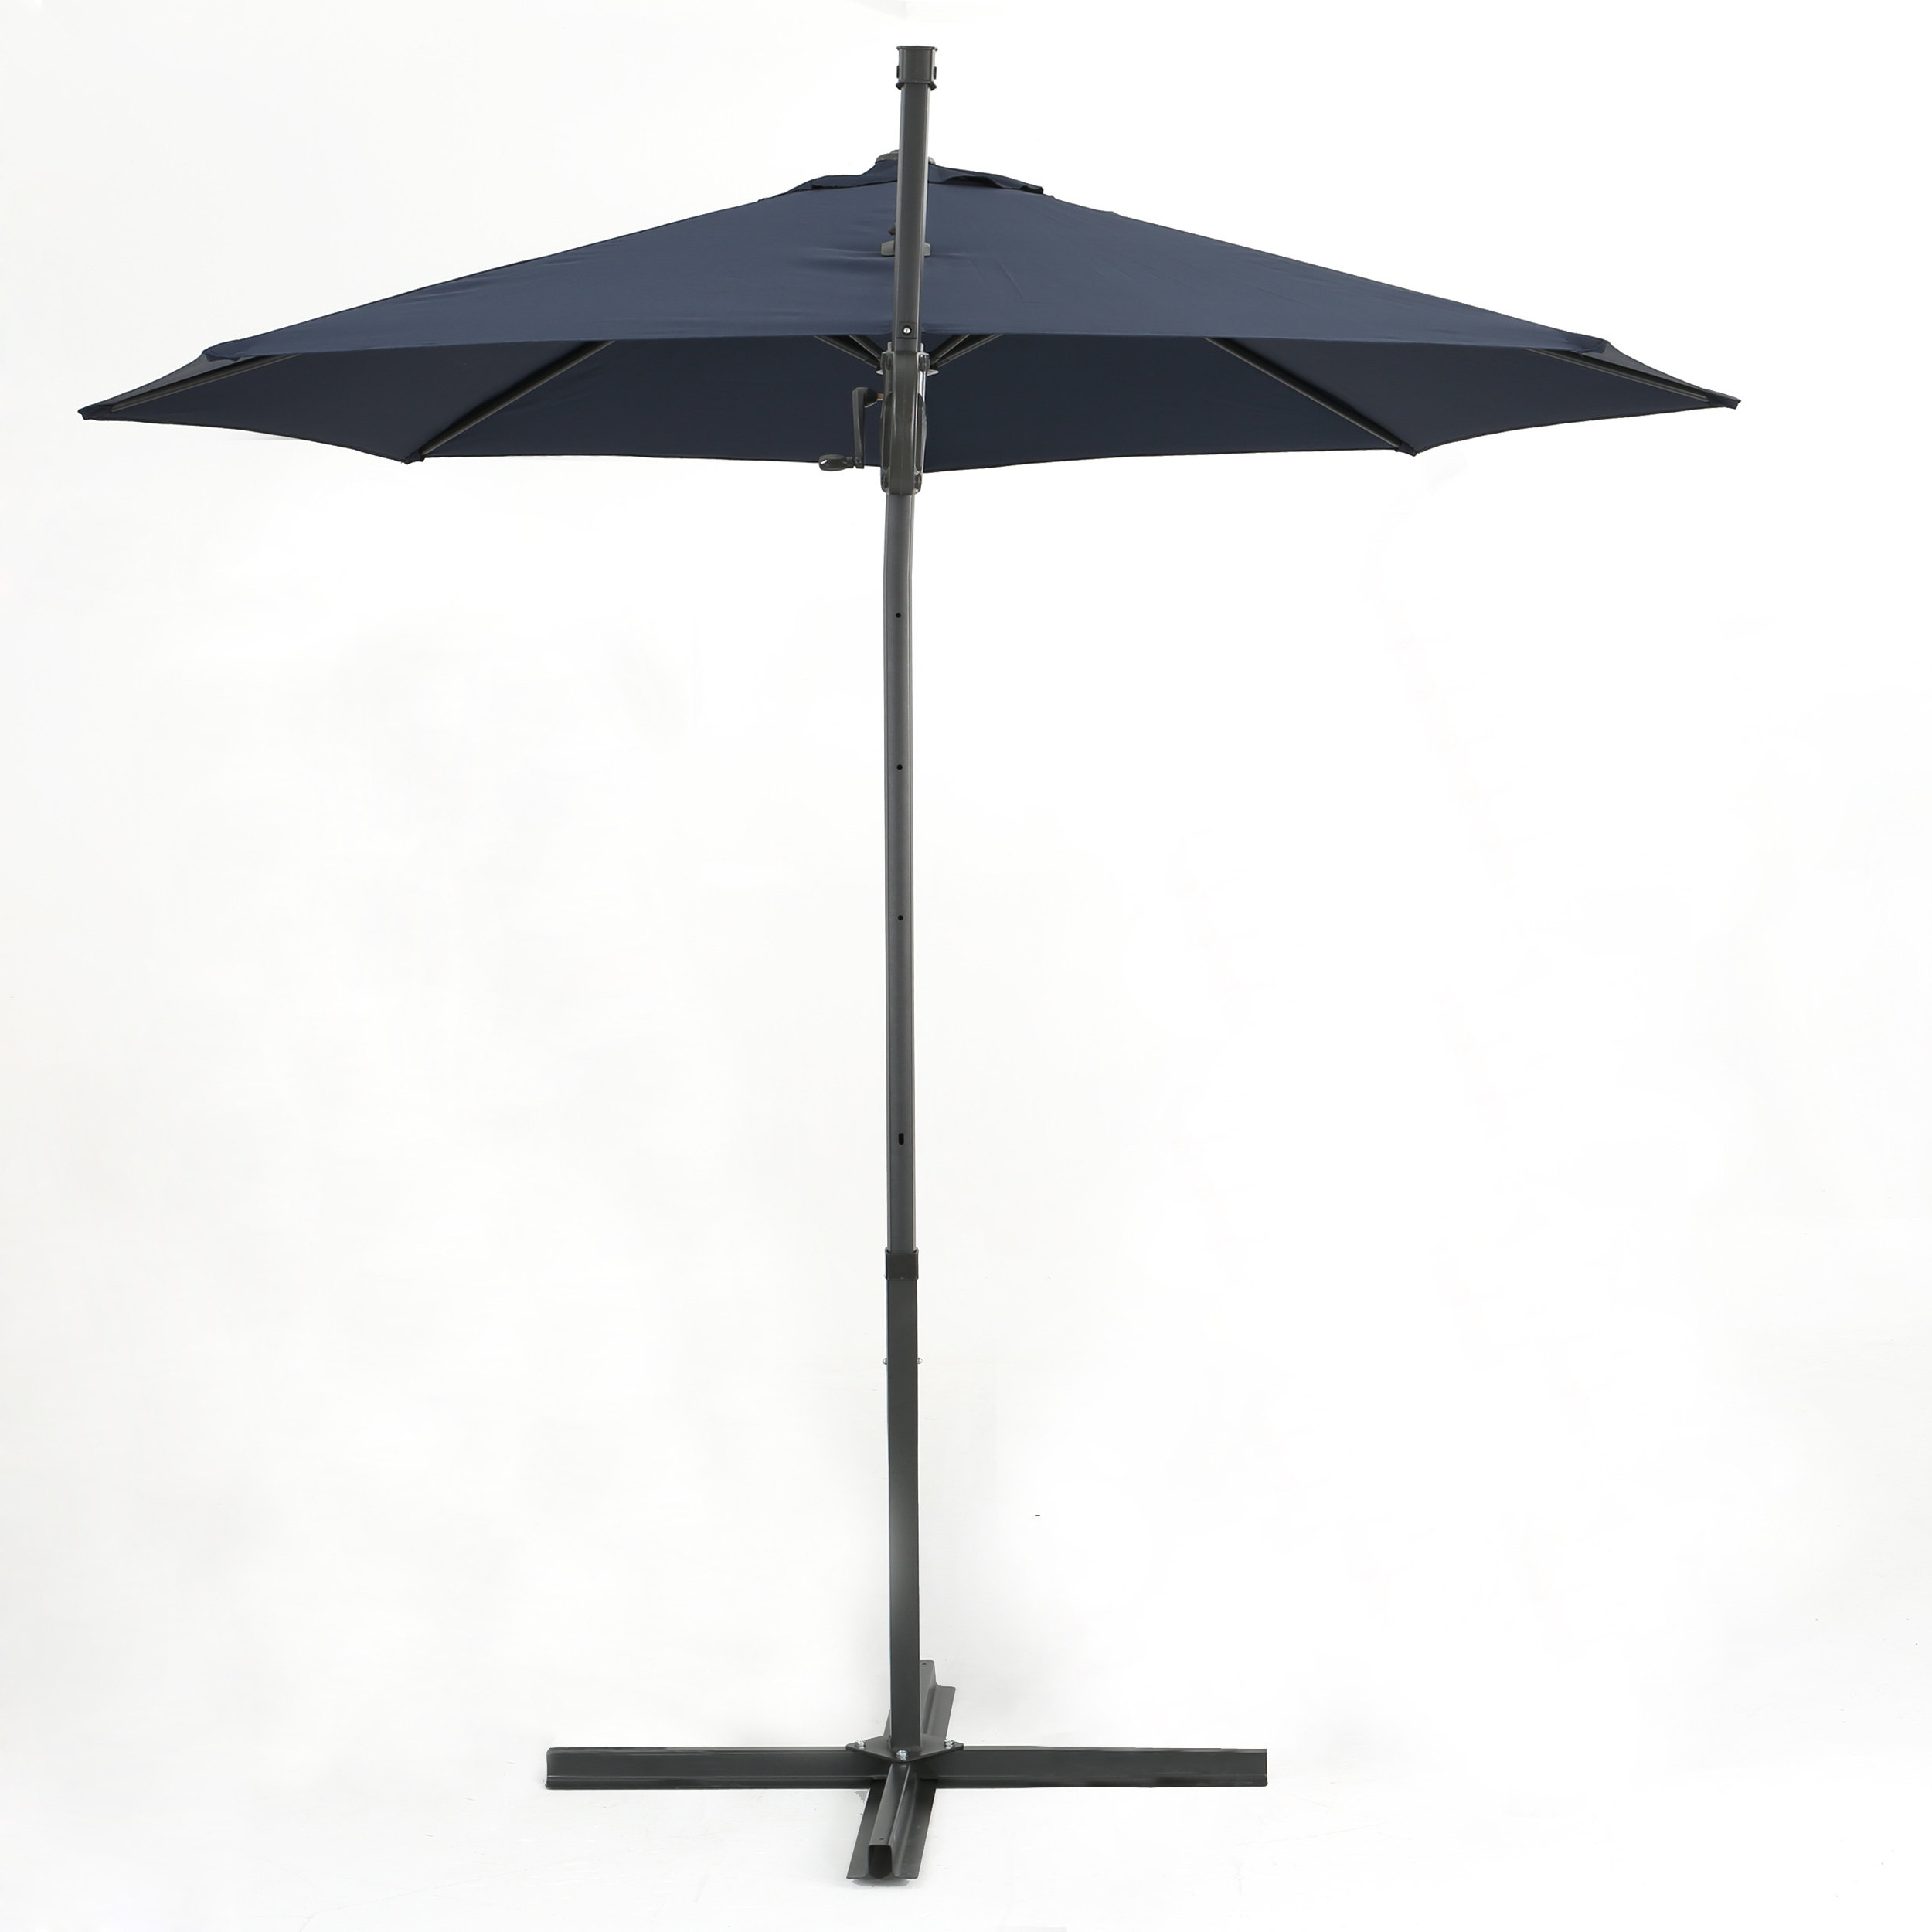 Karr Cantilever Umbrellas Throughout Most Current Jaelynn 9.5' Cantilever Umbrella & Reviews (Gallery 14 of 20)